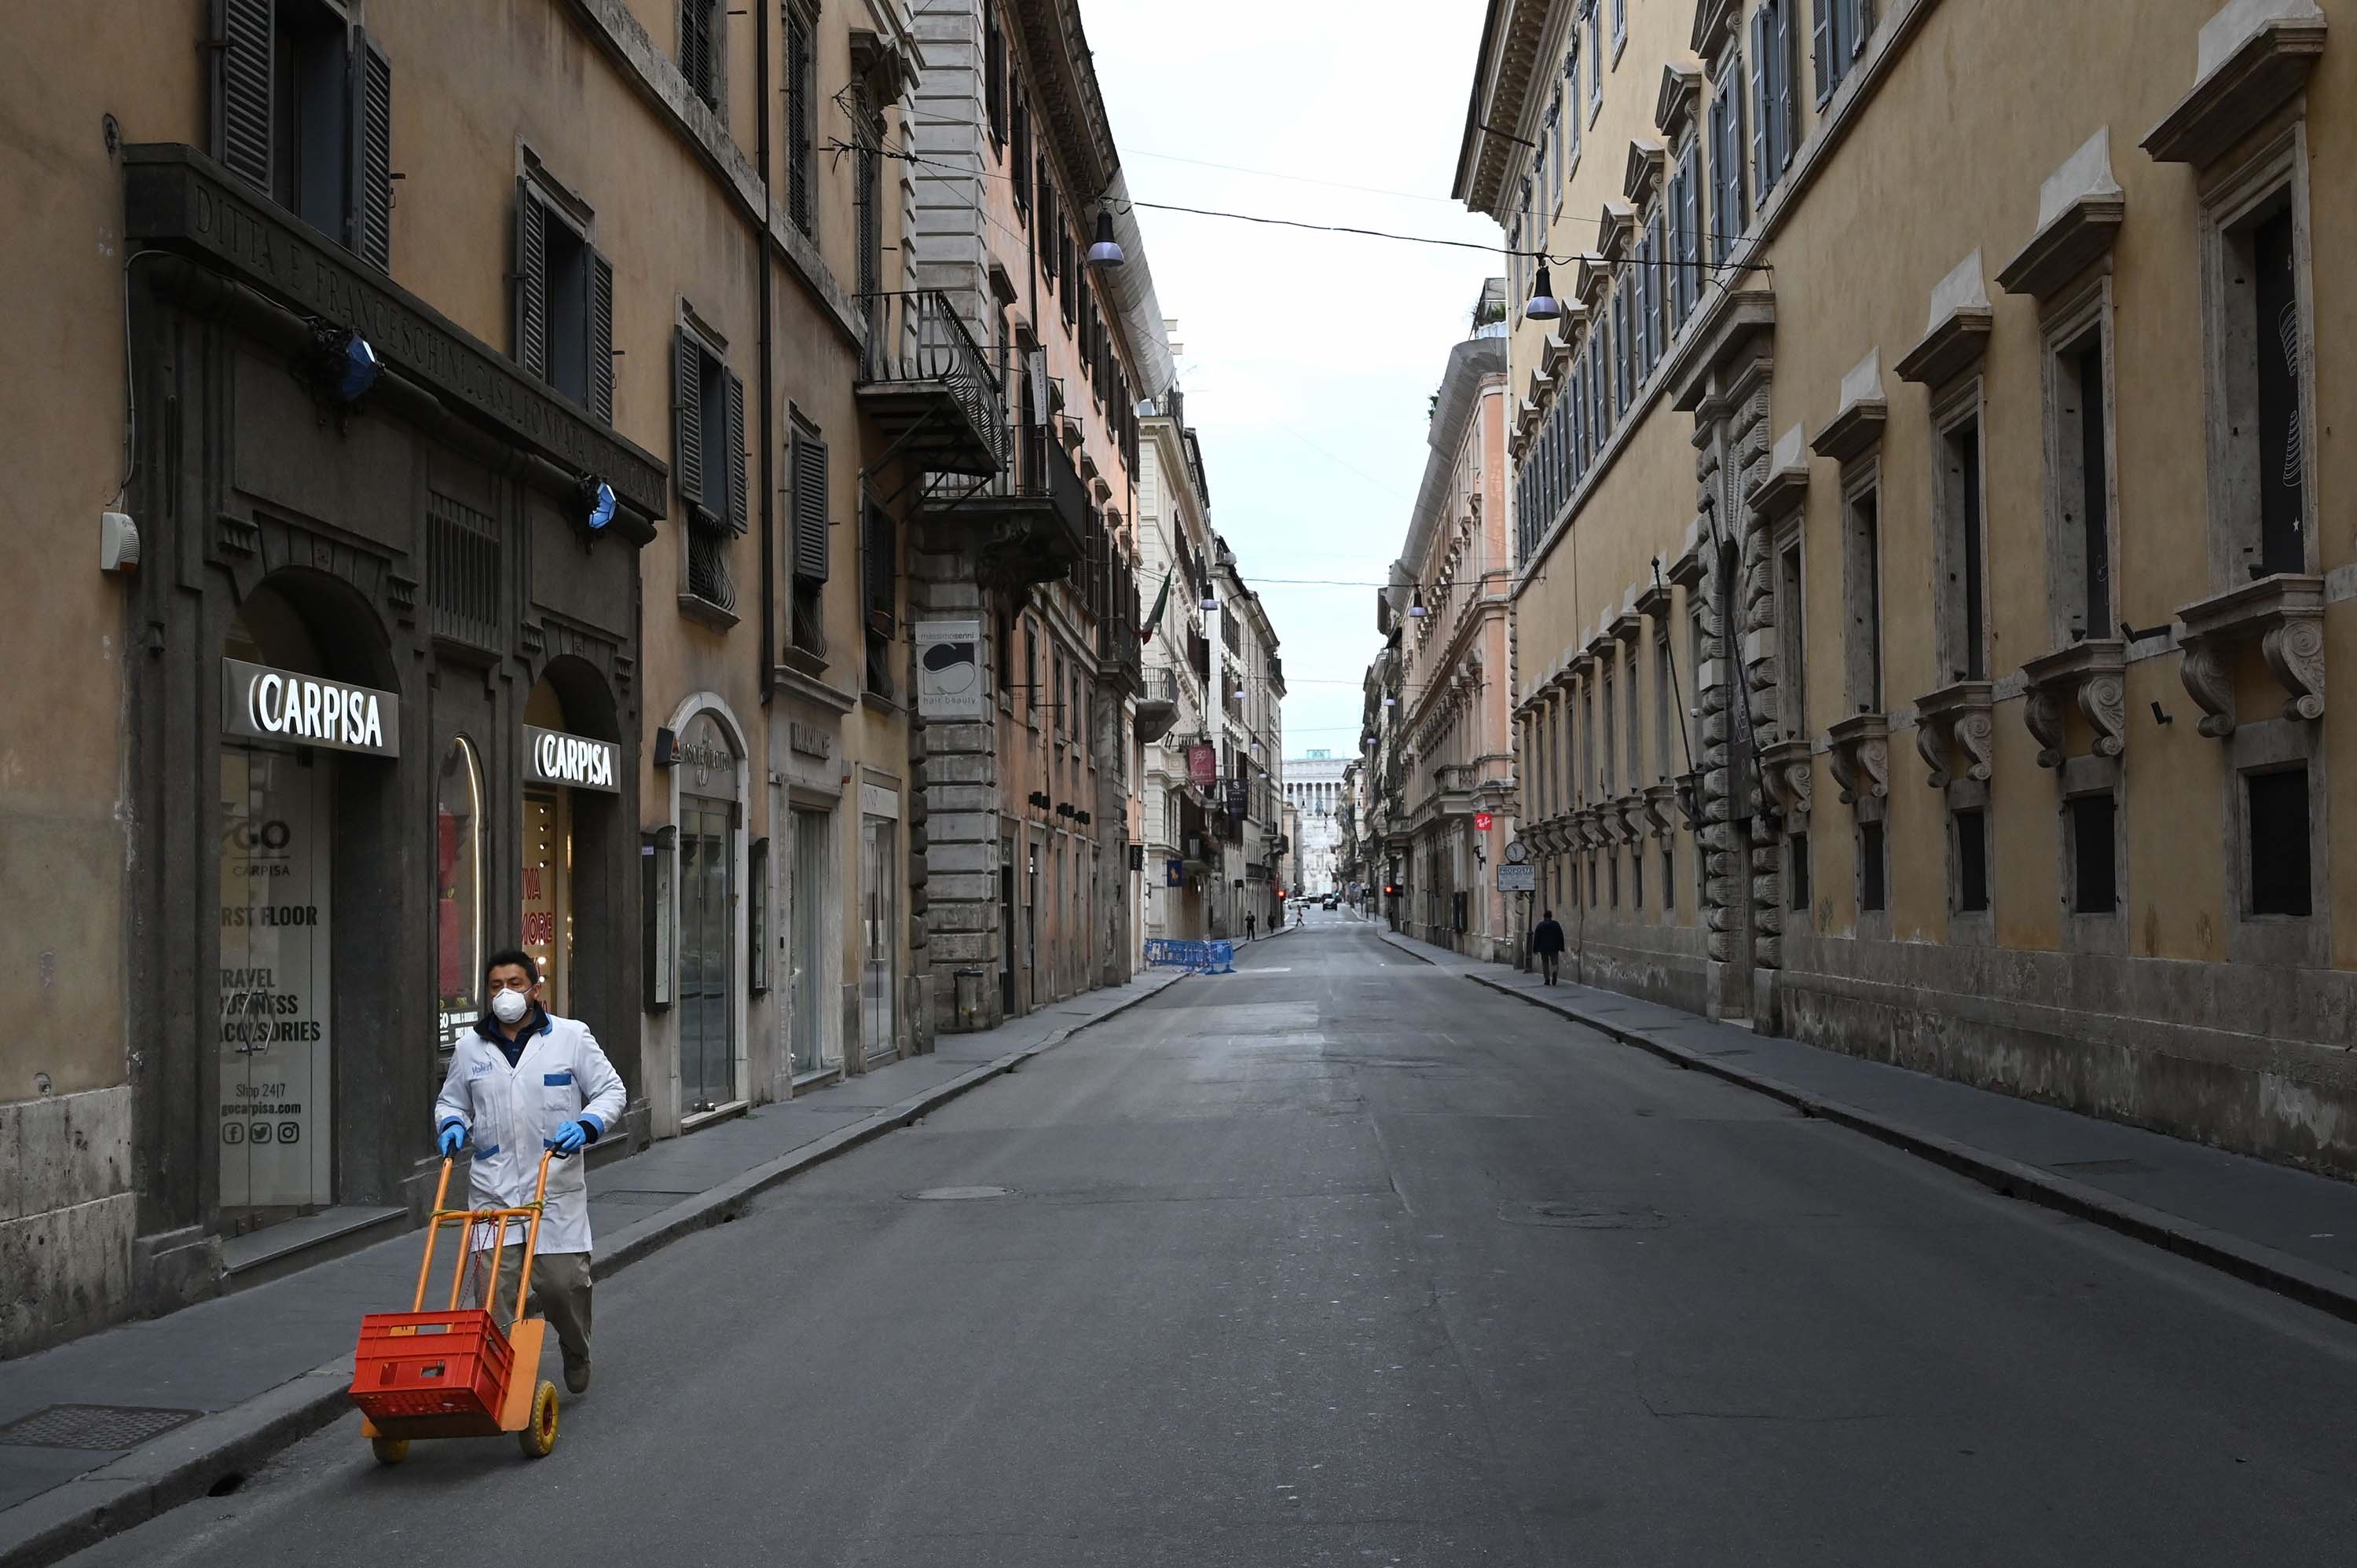 A delivery man wearing a protective mask pushes a cart across a deserted shopping street in Rome, Italy, on March 12.